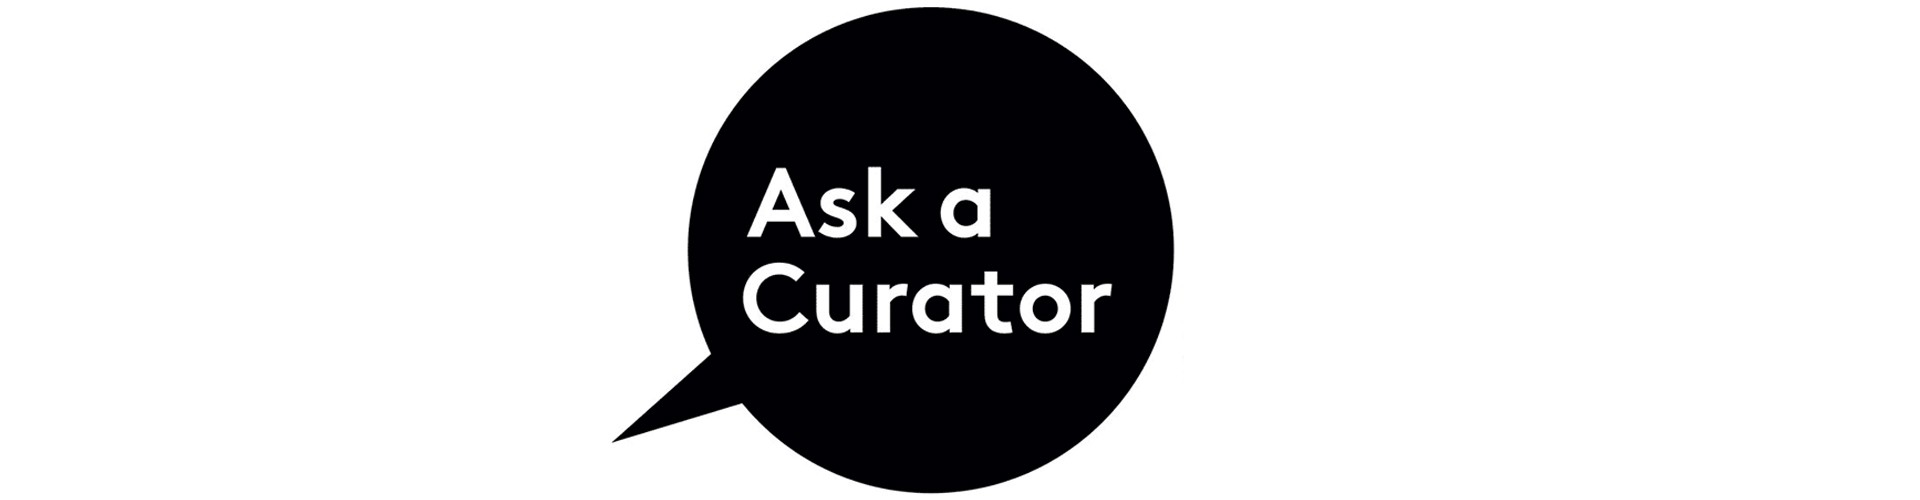 ask a curator 2019